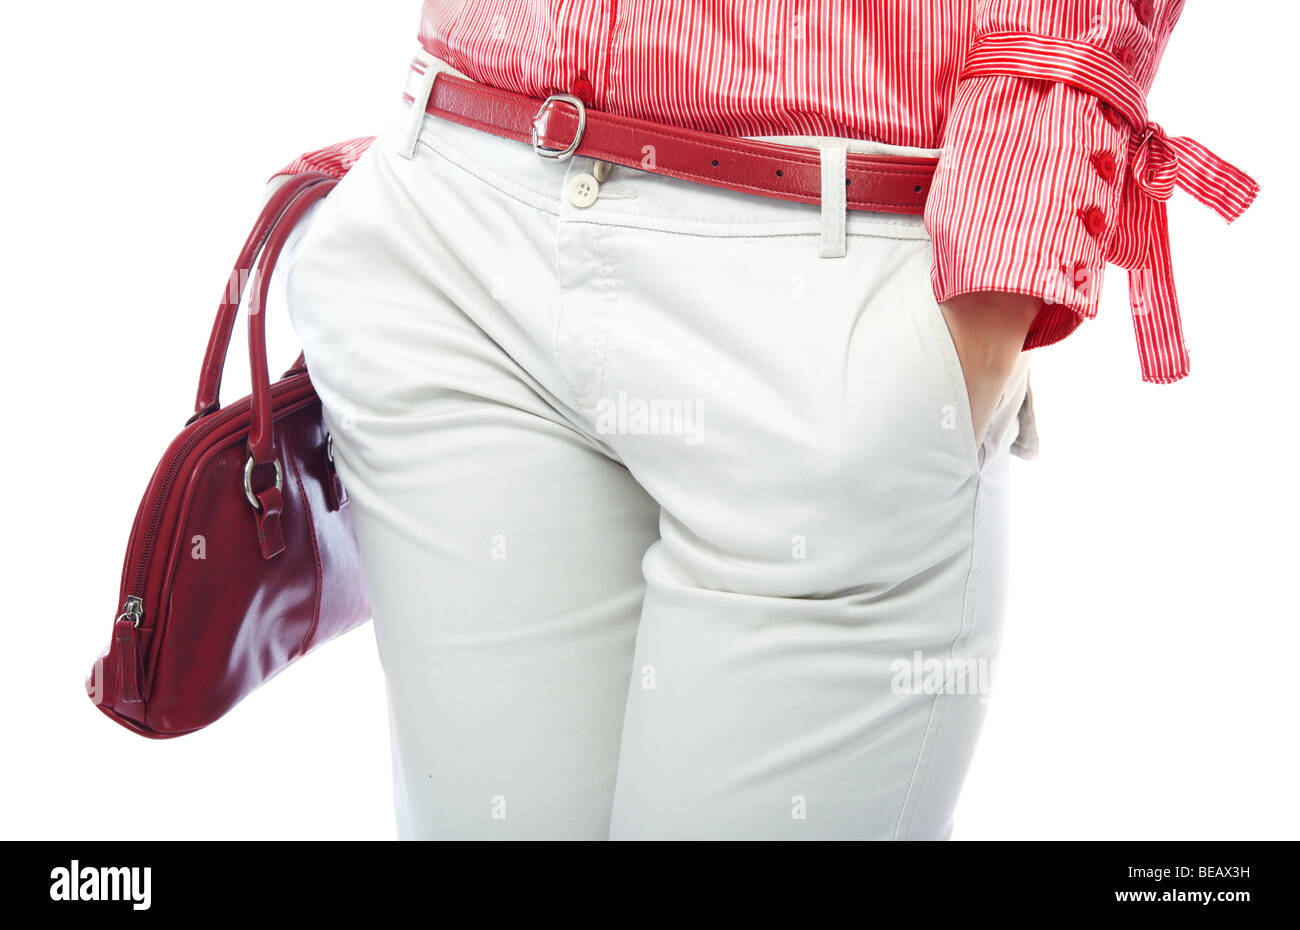 Body part of stylish lady in modern clothes with fashionable bag - Stock Image